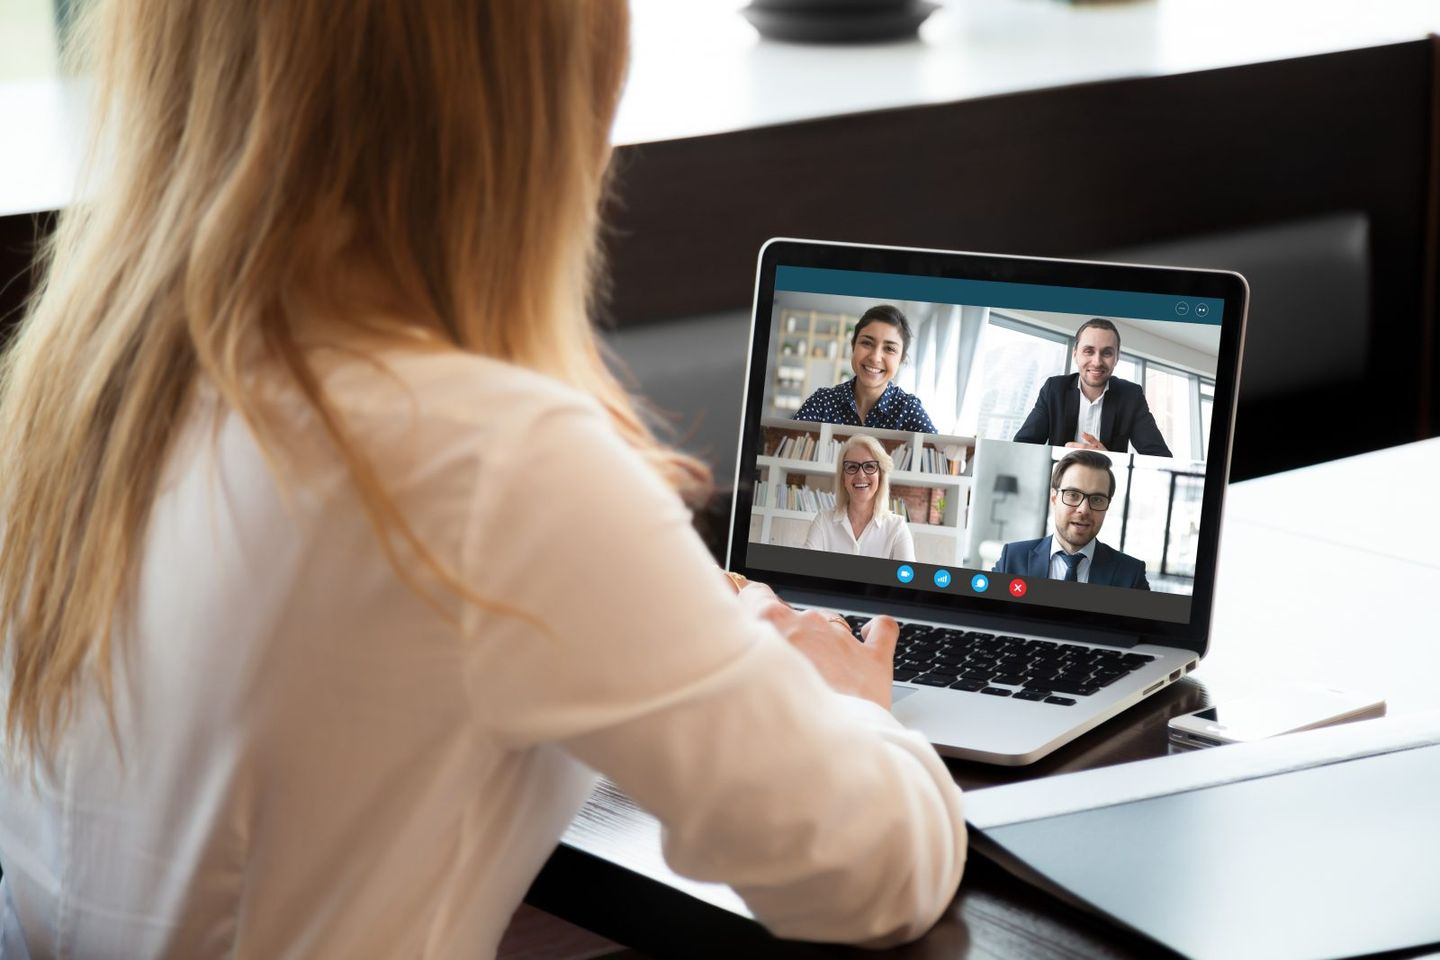 Female employee have team web conference on laptop